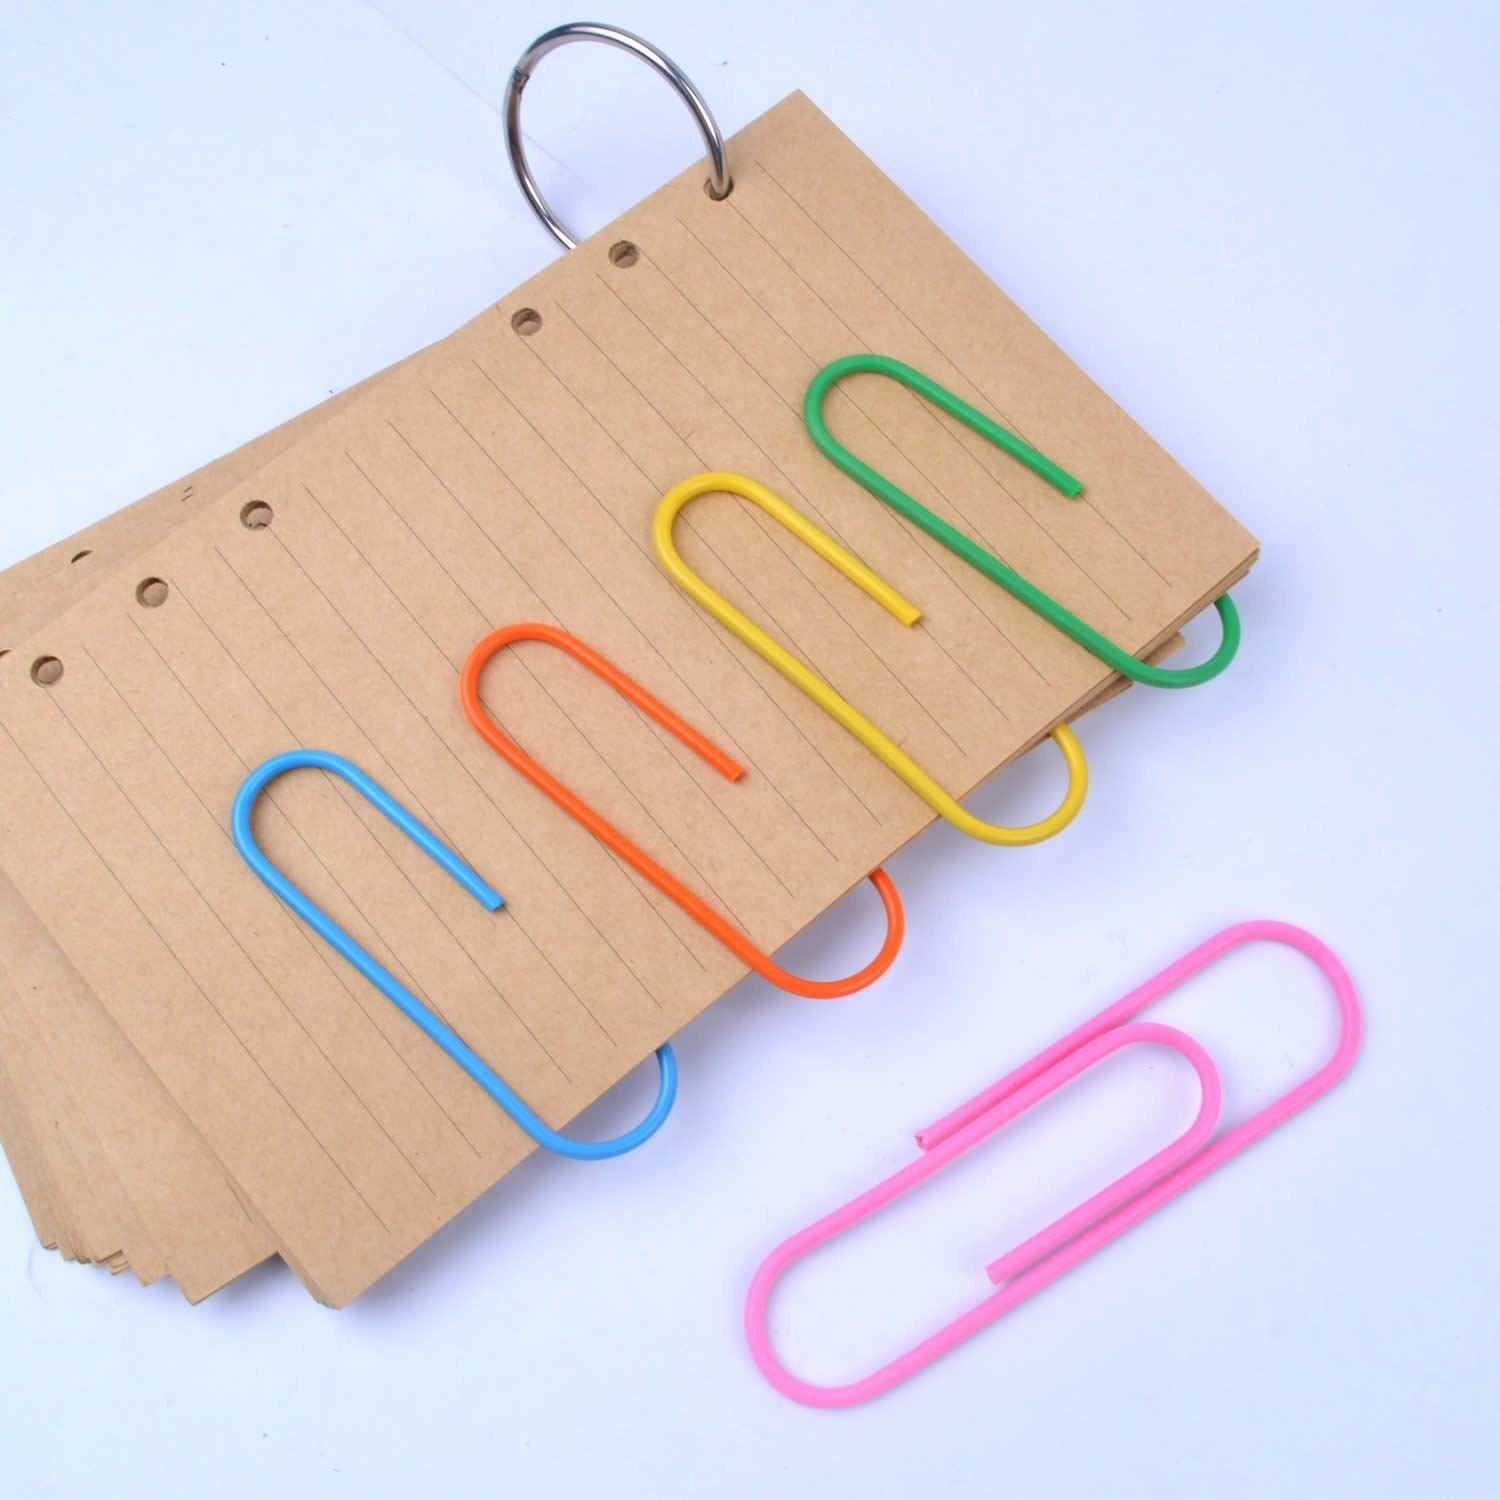 large paperclips in different colors